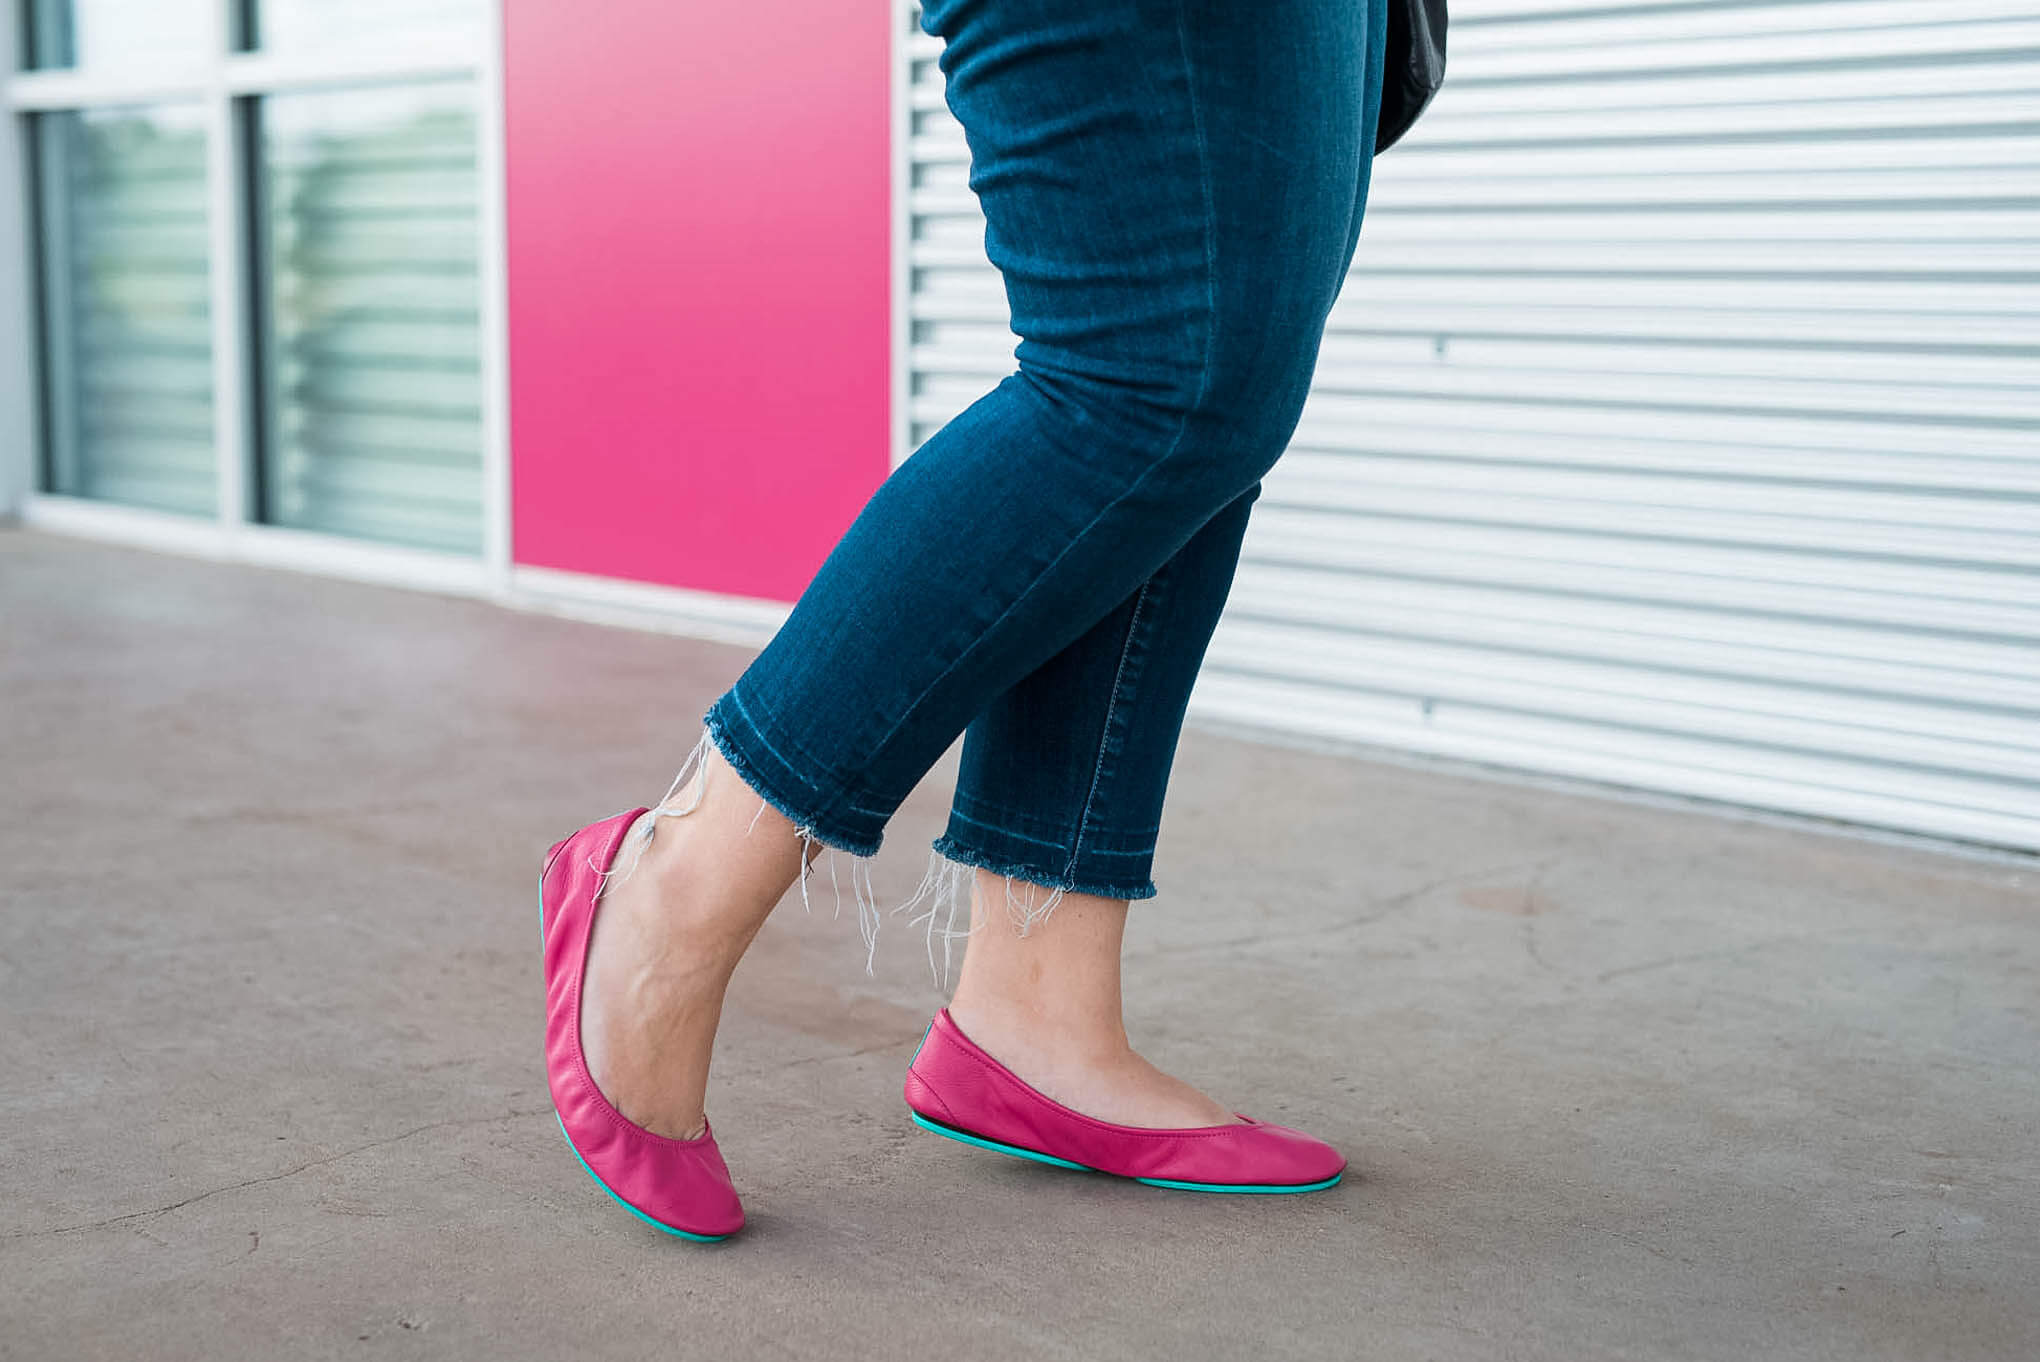 My fuschia Tieks ballet flats are comfortable yet stylish perfect for going to brunch or running errands. | Something Gold, Something Blue curvy fashion blog by Emily Bastedo